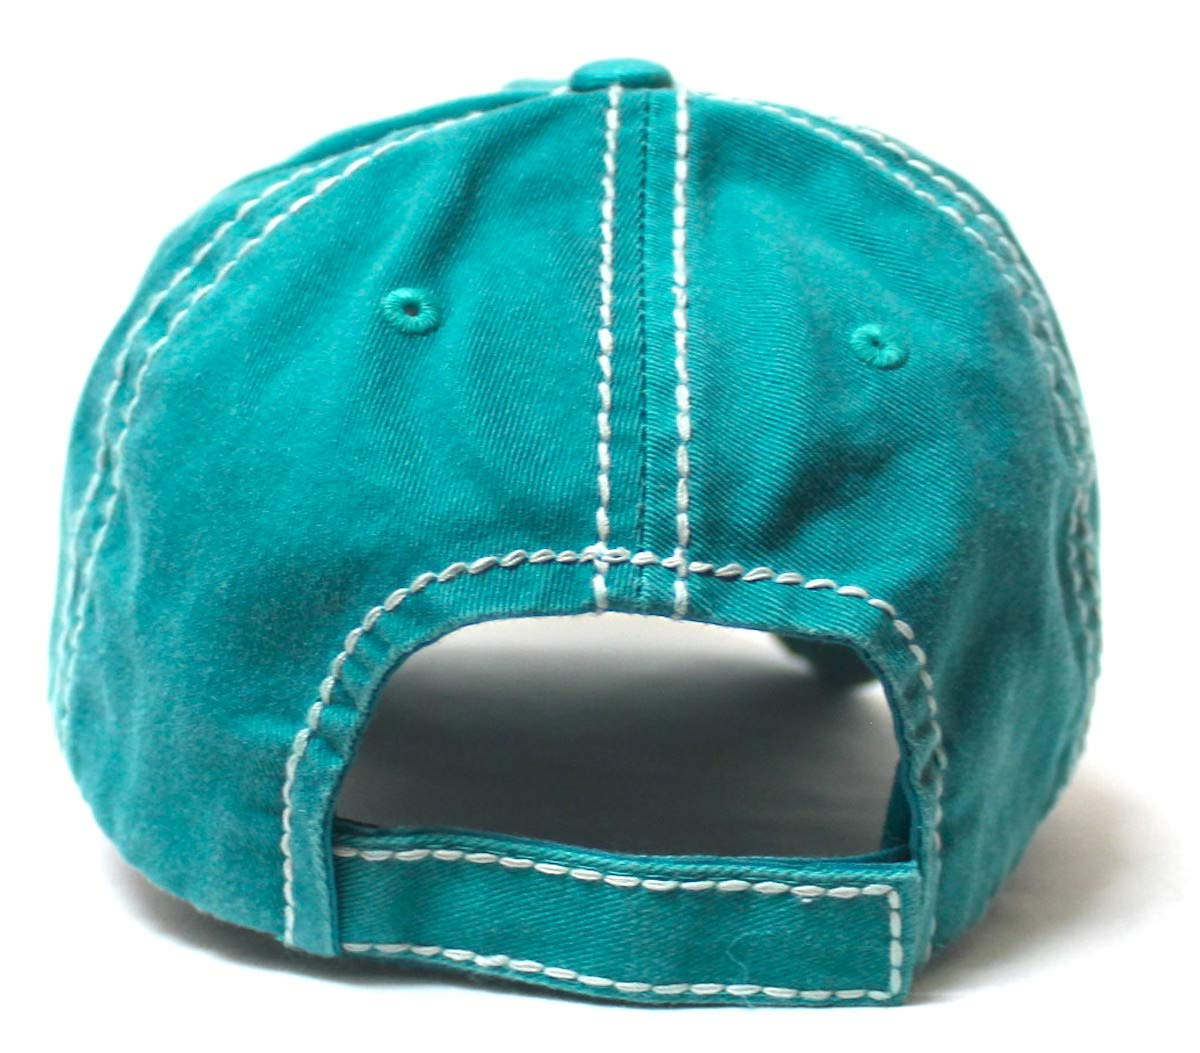 Women's Baseball Cap Camping Hair Don't Care Patch Embroidery Monogram Hat, Beach Turquoise